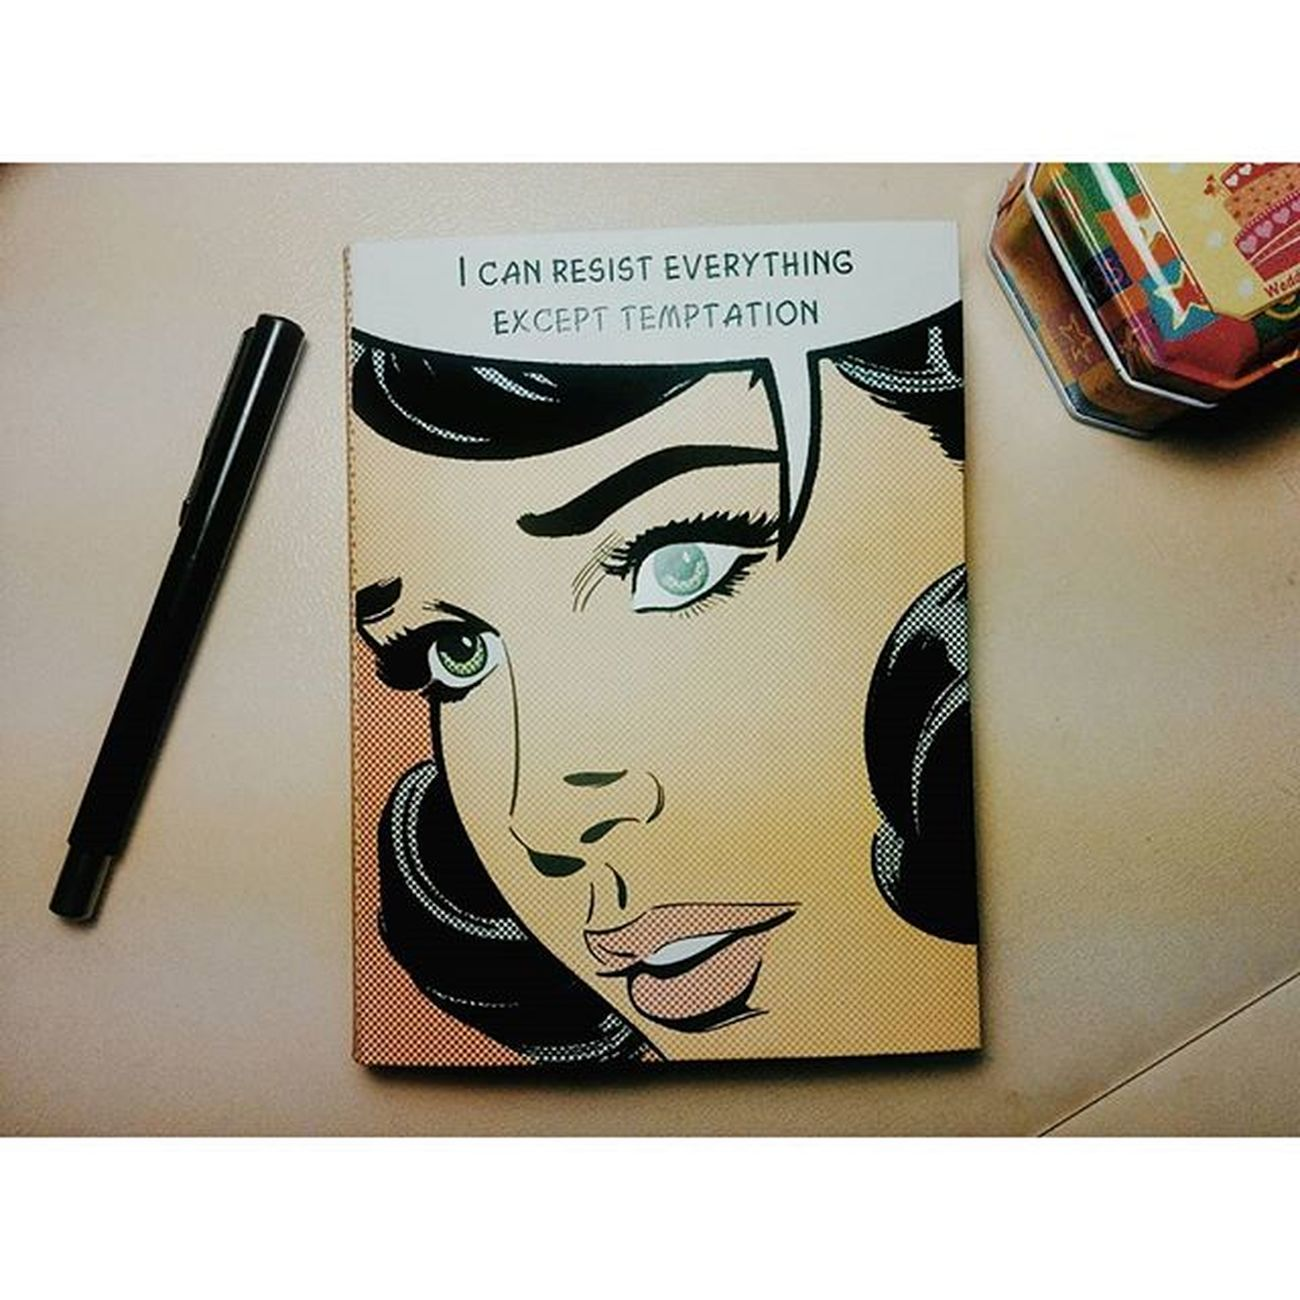 "Best gift ever! Multam @deniseedee 😘😍 ""I can resist everything except temptation"" - Oscar Wilde 😇 _____________________________________ Ig_bucharest Ig_romania Ig_europe Igersbucharest Igersromania Igaddict Popart Romania Happy Vscogood Vscoromania Organizer Planner Notebook Writing Oscarwilde Parker Retro Vintage Agenda Awesome Stationeryi Penfreaks Photooftheday Latergram bestgiftever bestfriend calligraphy calligraphyfreak"